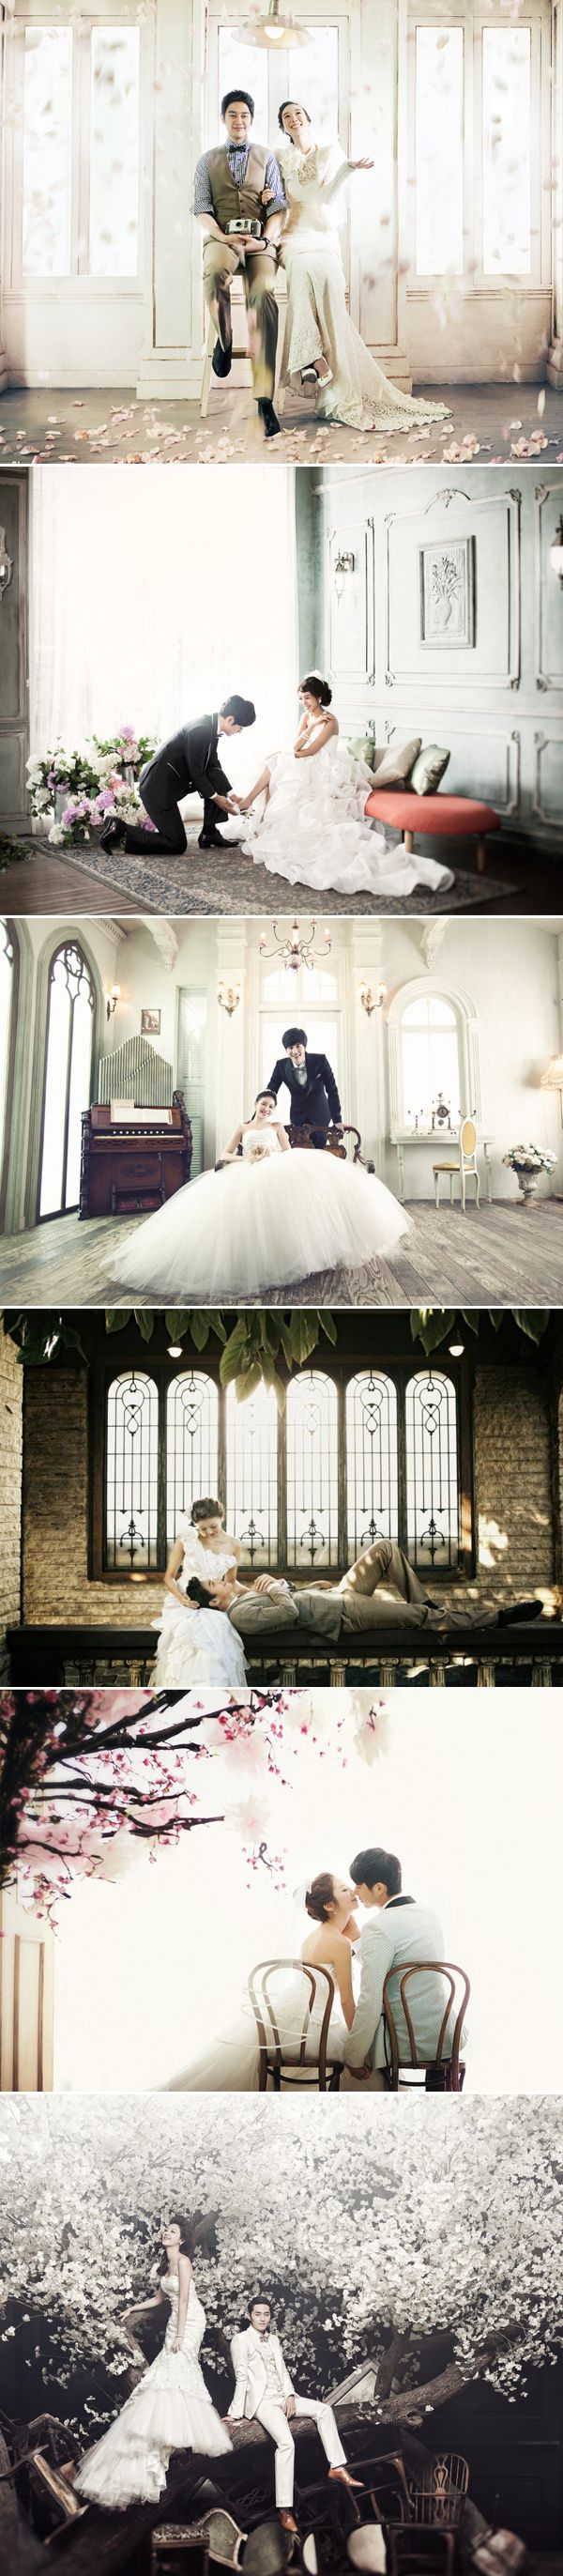 Wedding photoshoots. Korean couples (or their photographers!) have some of the most creative photo ideas I have seen.